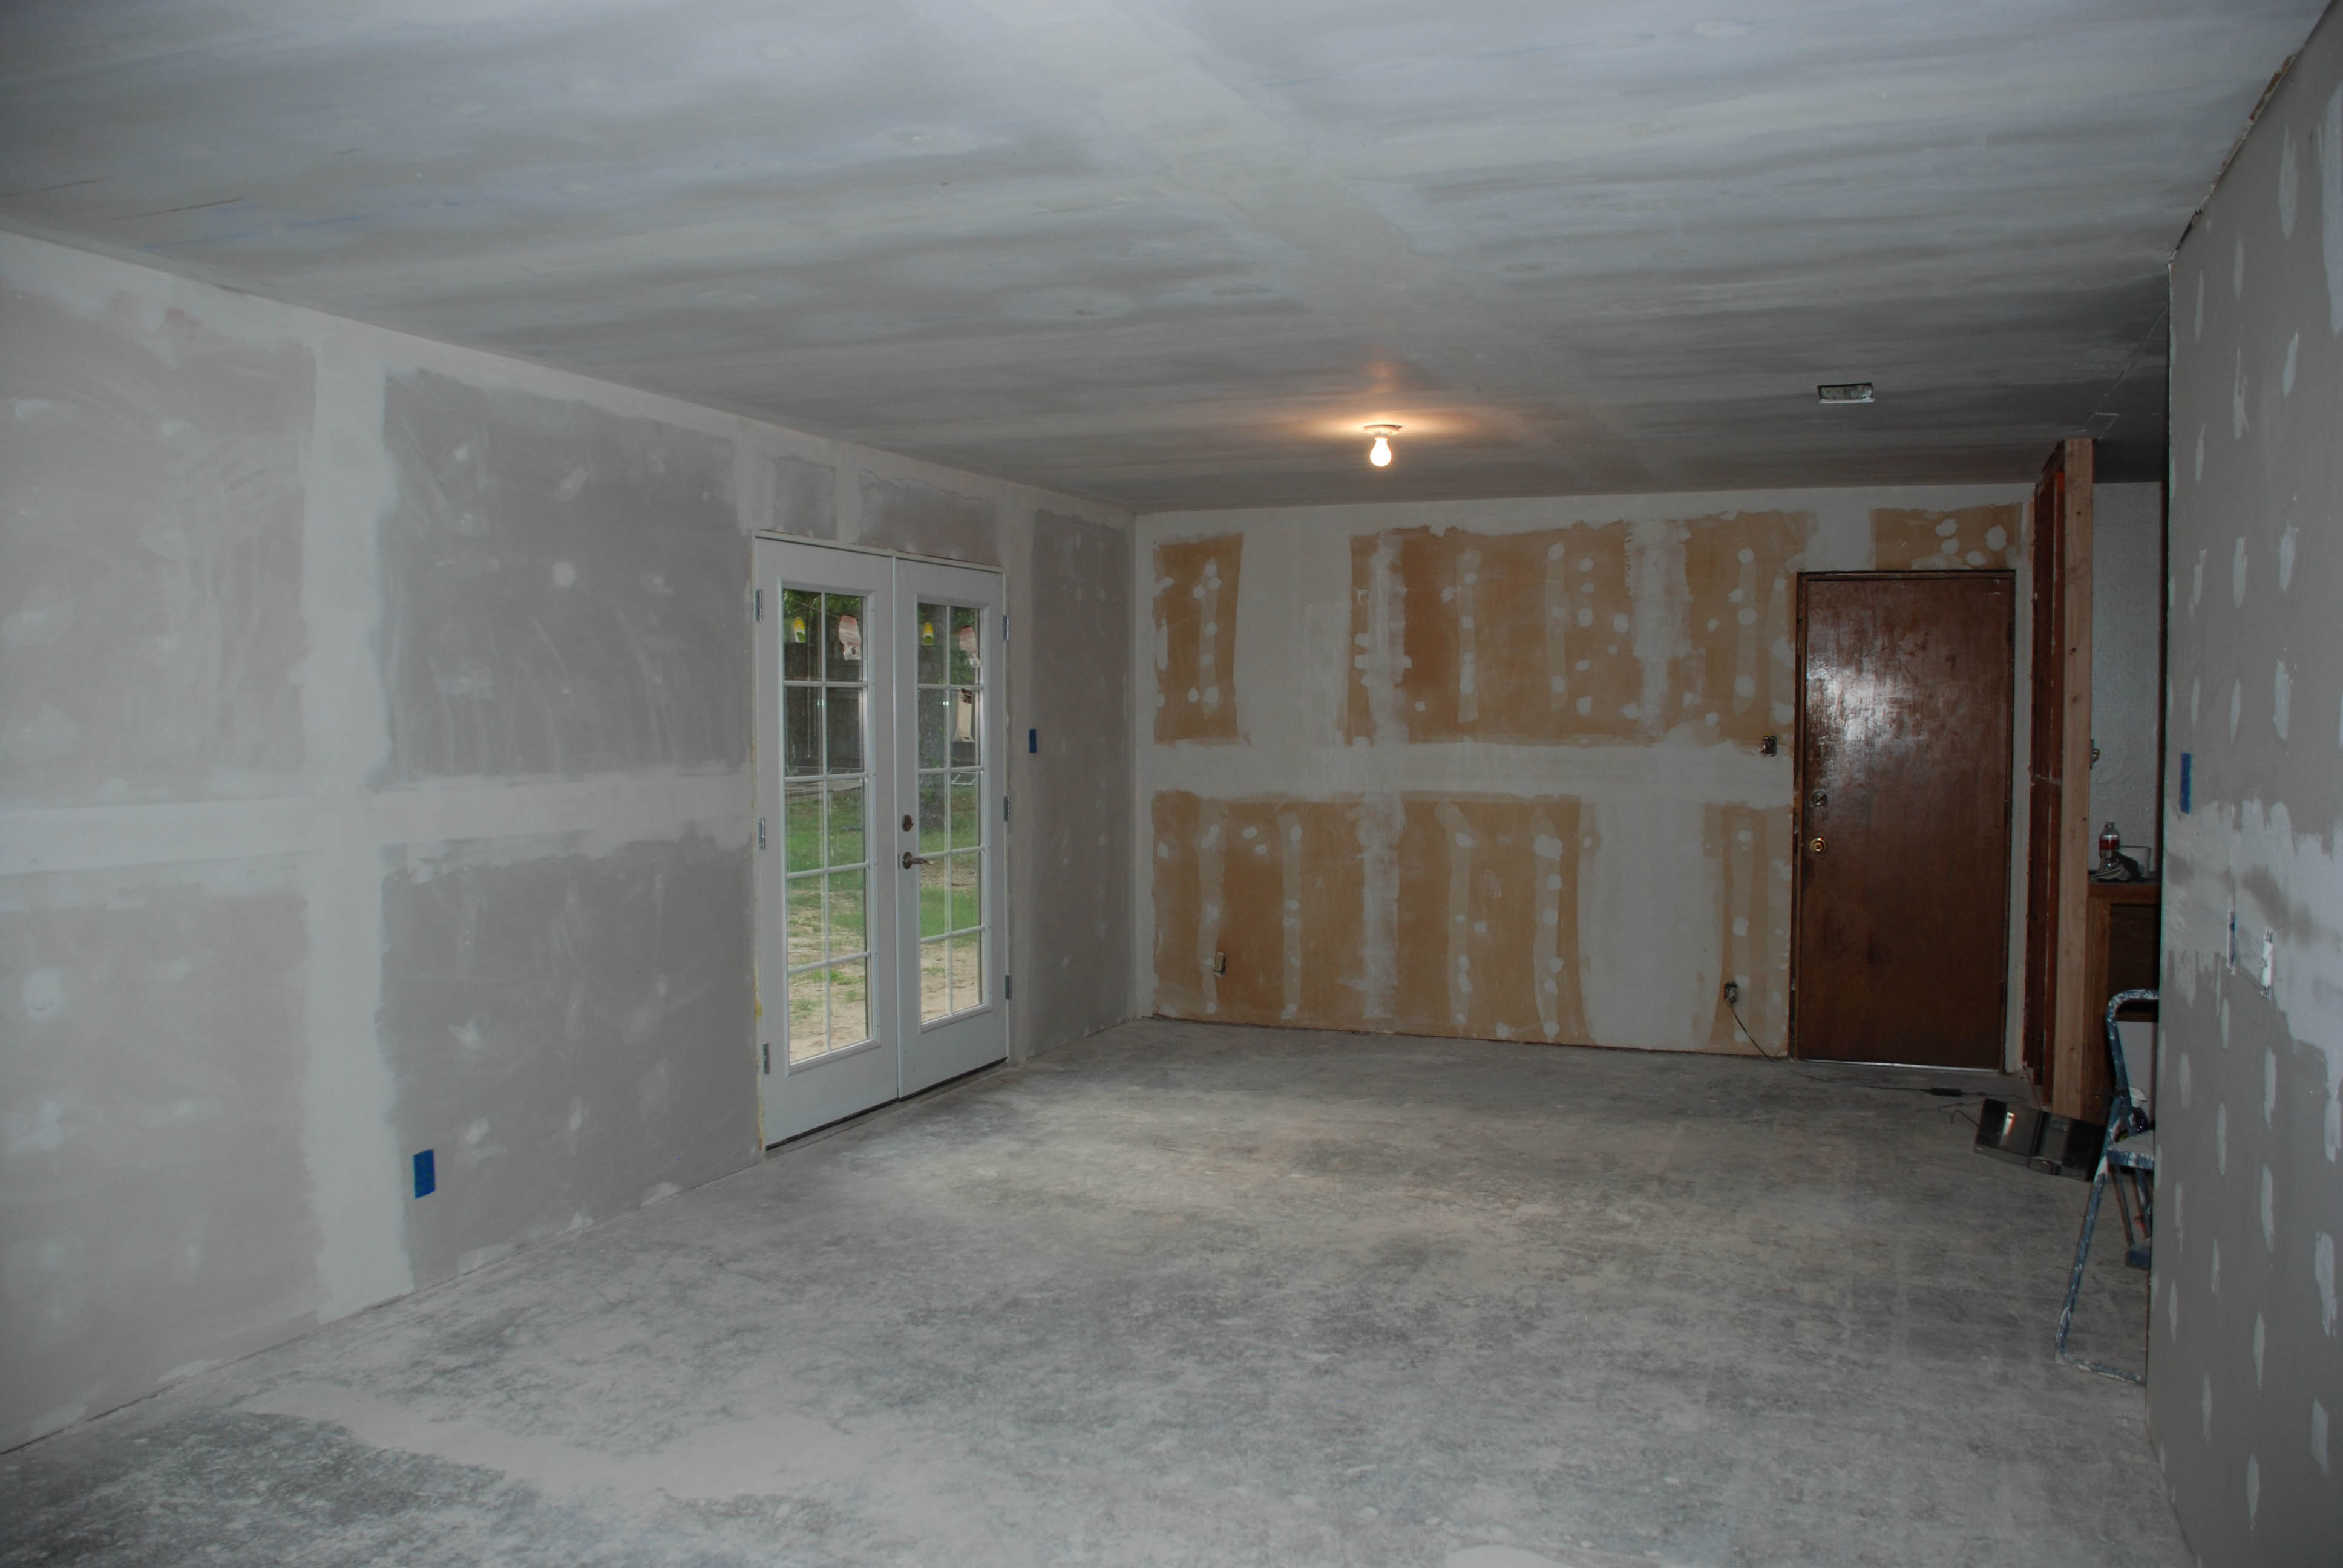 Redwood Renovation Join Us On Our Journey As We Renovate